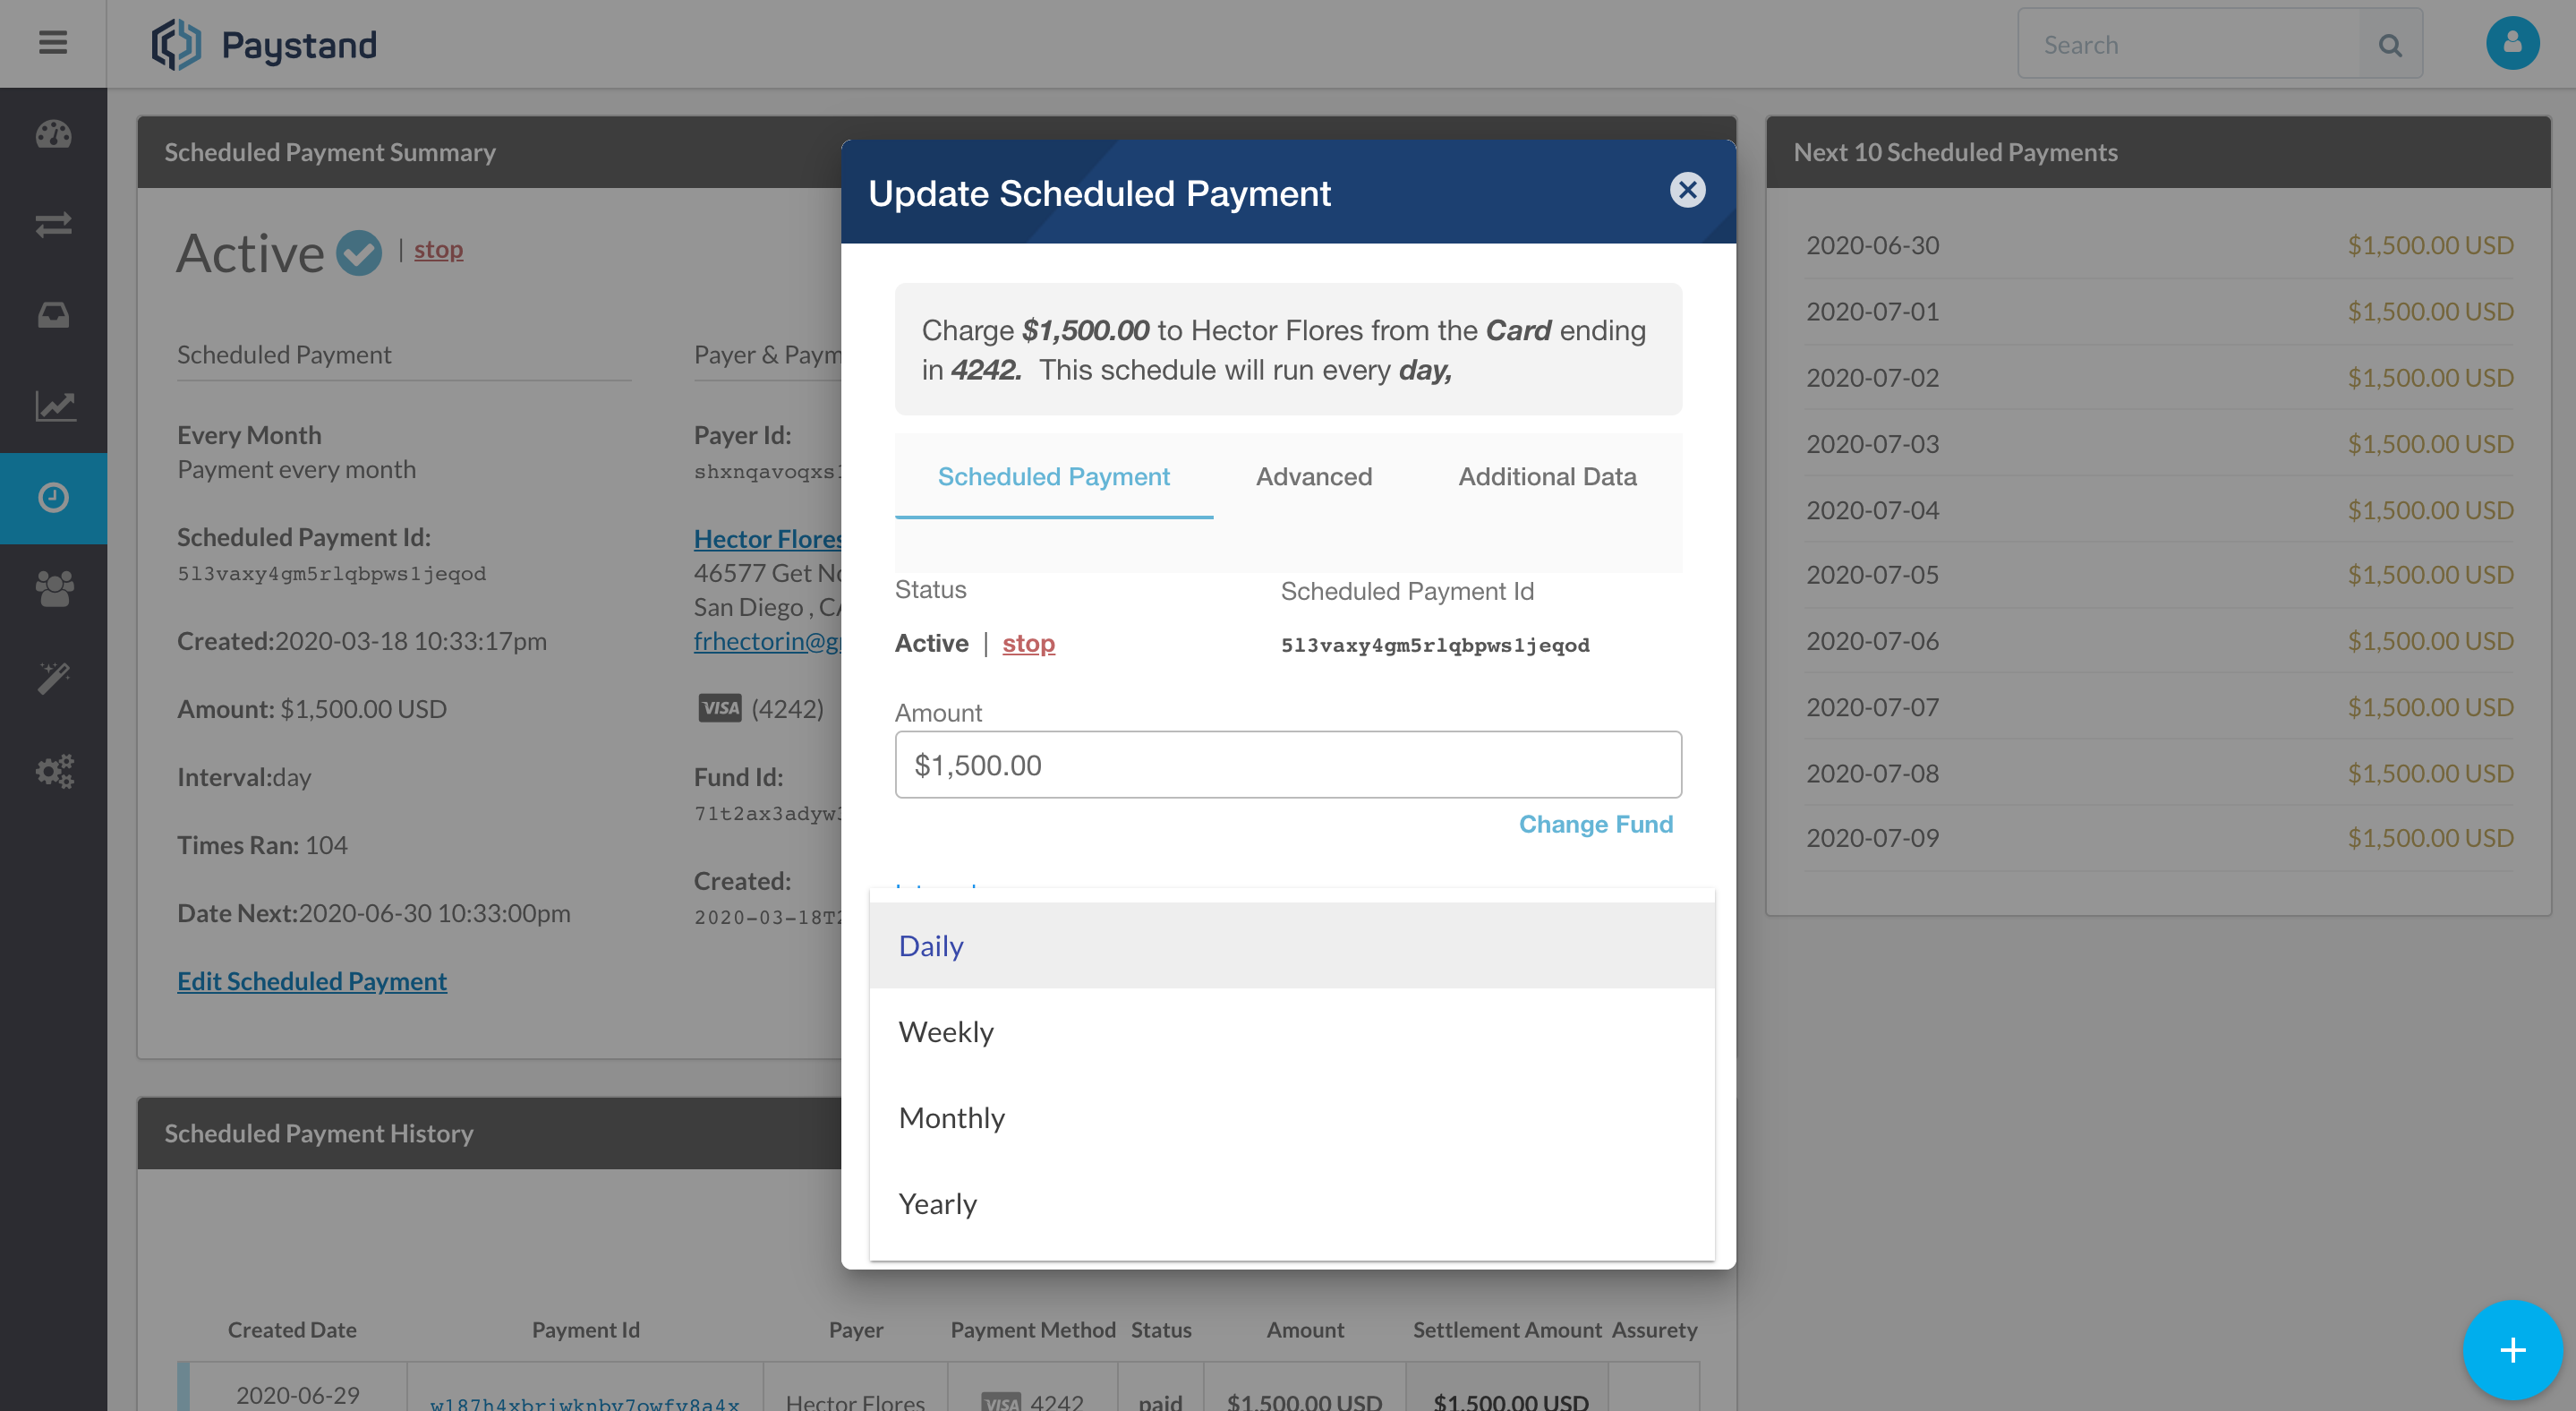 Schedule Payments - Recurring